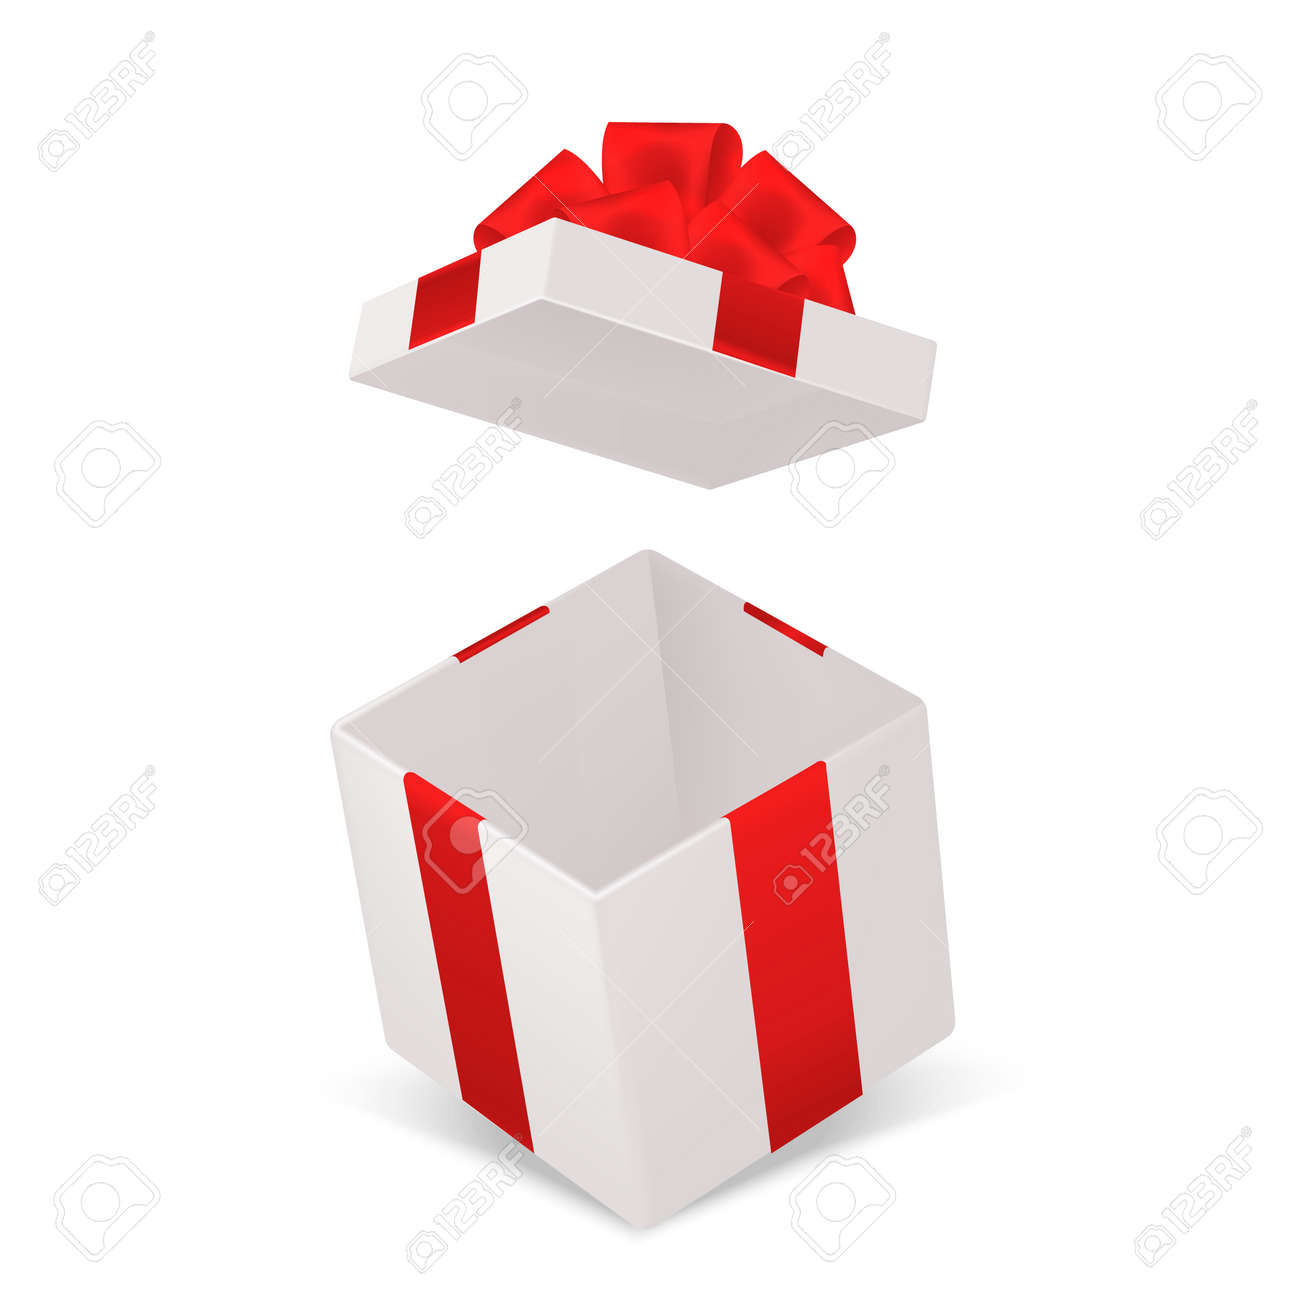 Open gift box. Realistic cardboard cube container with red bow angle view. Decorative empty pack mockup. Holiday or birthday surprise. Vector 3d surprise package isolated illustration - 165663925